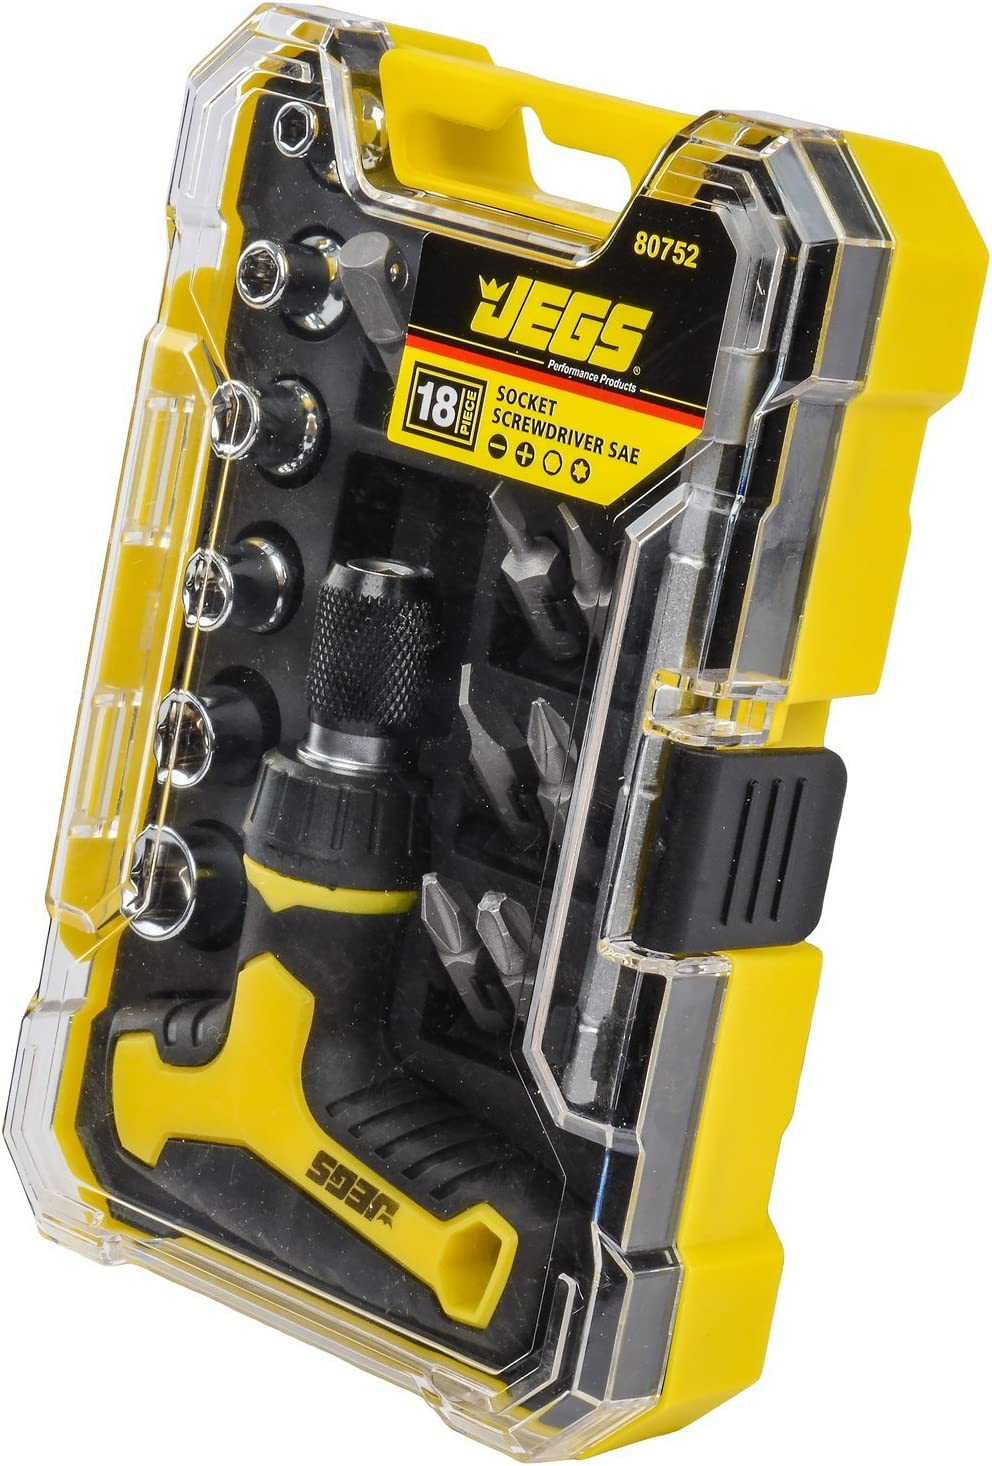 JEGS 80752 Socket and Screwdriver Set 18-Piece SAE